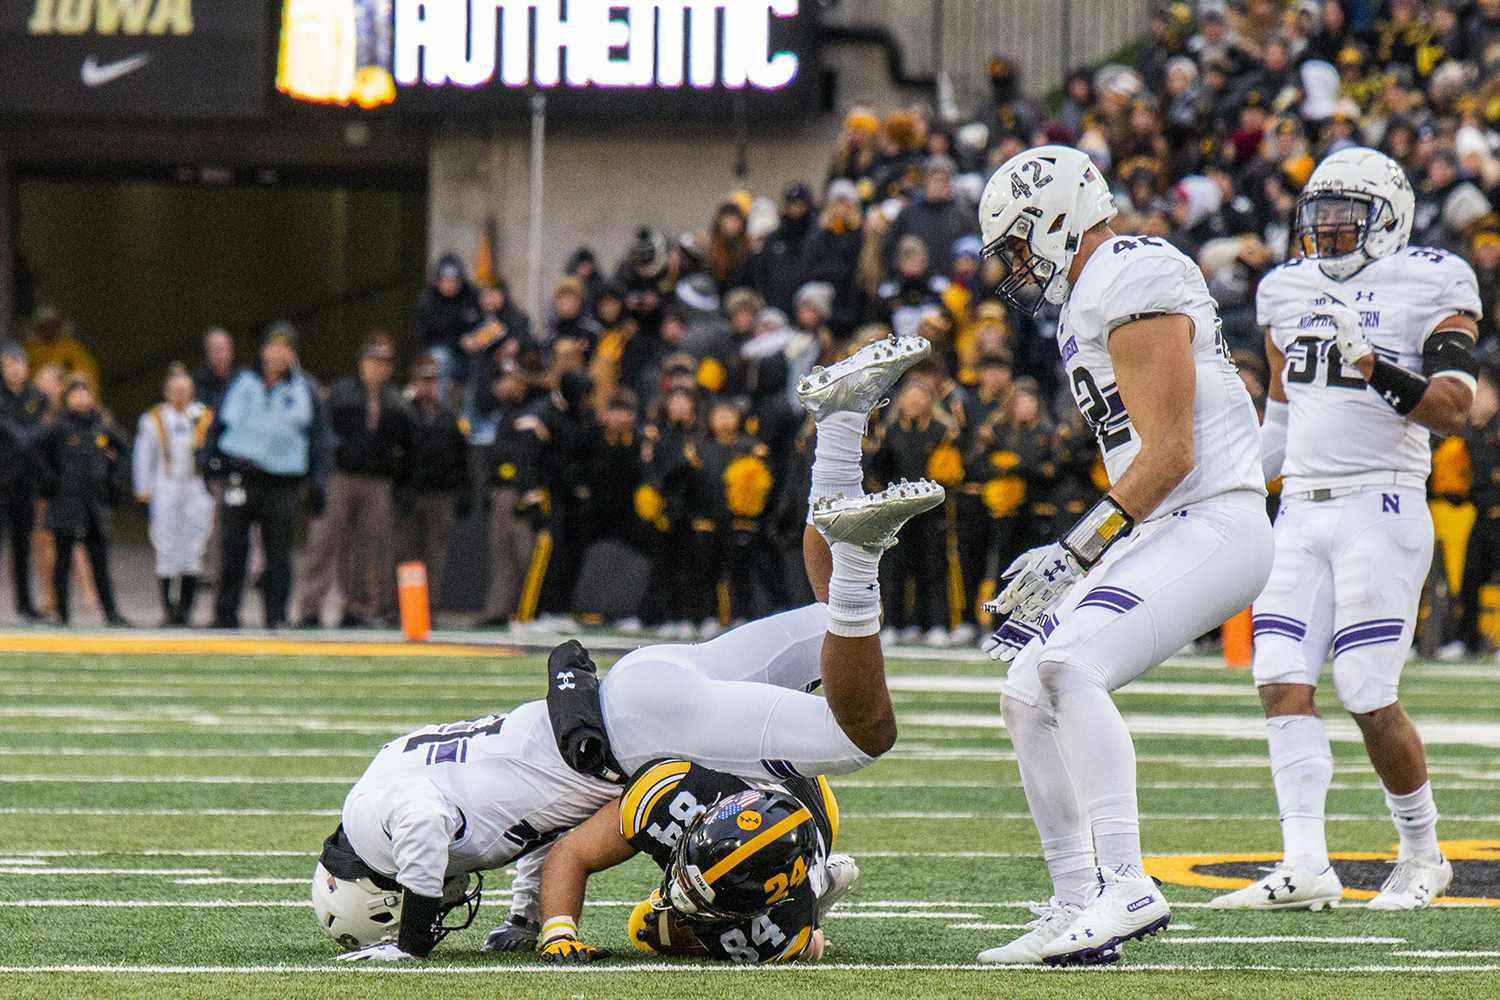 Northwestern+defensive+back+JR+Pace+tackles+Iowa+wide+receiver+Nick+Easley+during+the+Iowa%2FNorthwestern+game+at+Kinnick+Stadium+on+Saturday%2C+November+10%2C+2018.+The+Wildcats+defeated+the+Hawkeyes+14-10.+%28Katina+Zentz%2FThe+Daily+Iowan%29